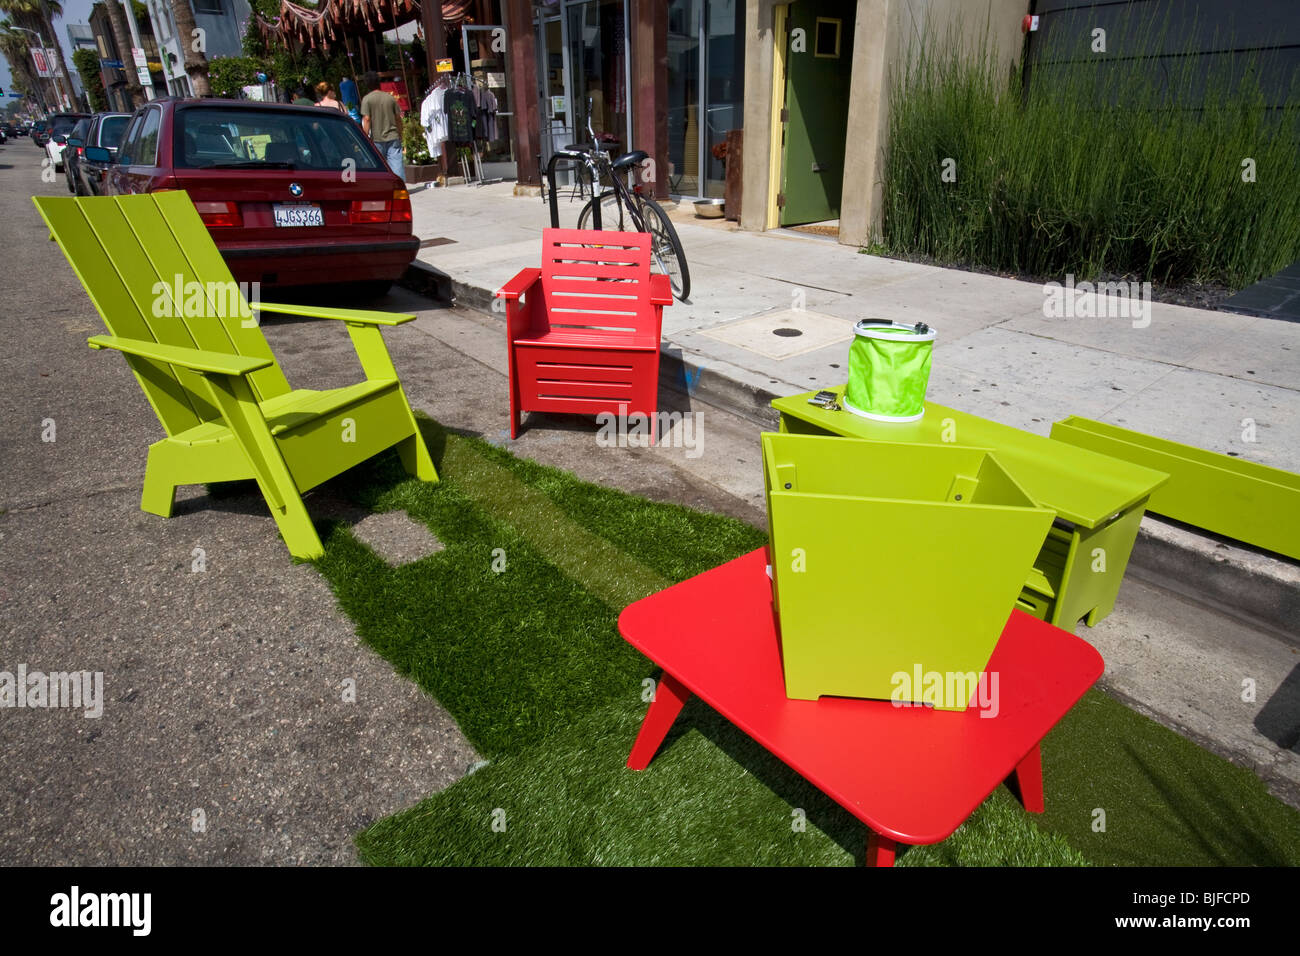 Recycled plastic outdoor furniture by Loll Designs, made from recycled high  density polyethylene (HDPE). - Recycled Plastic Outdoor Furniture By Loll Designs, Made From Stock